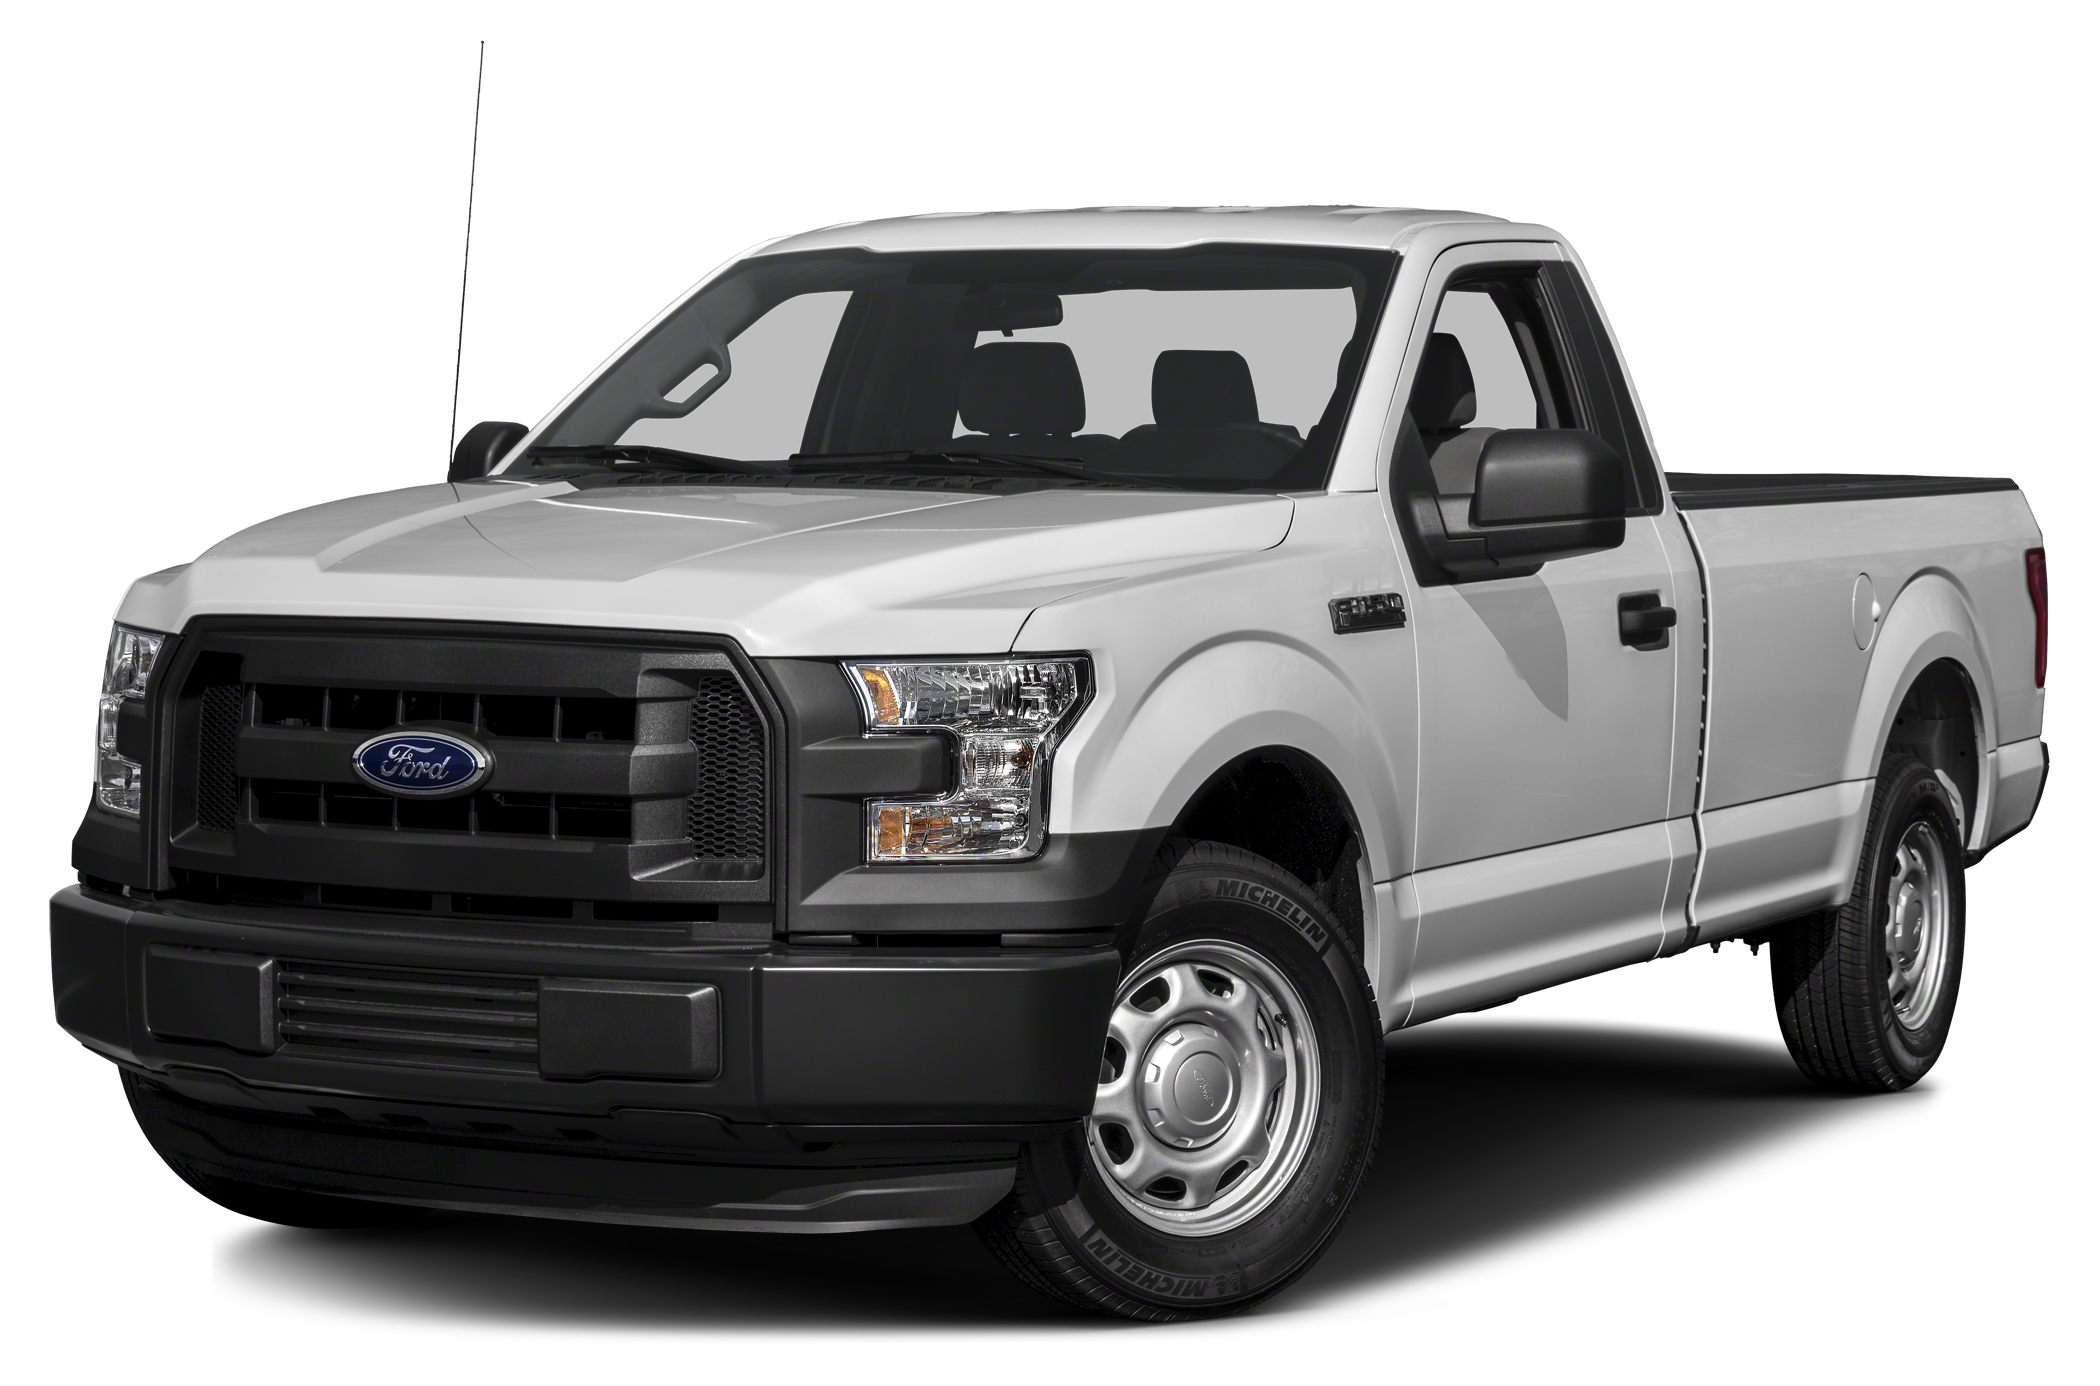 2016 ford f 150. Black Bedroom Furniture Sets. Home Design Ideas